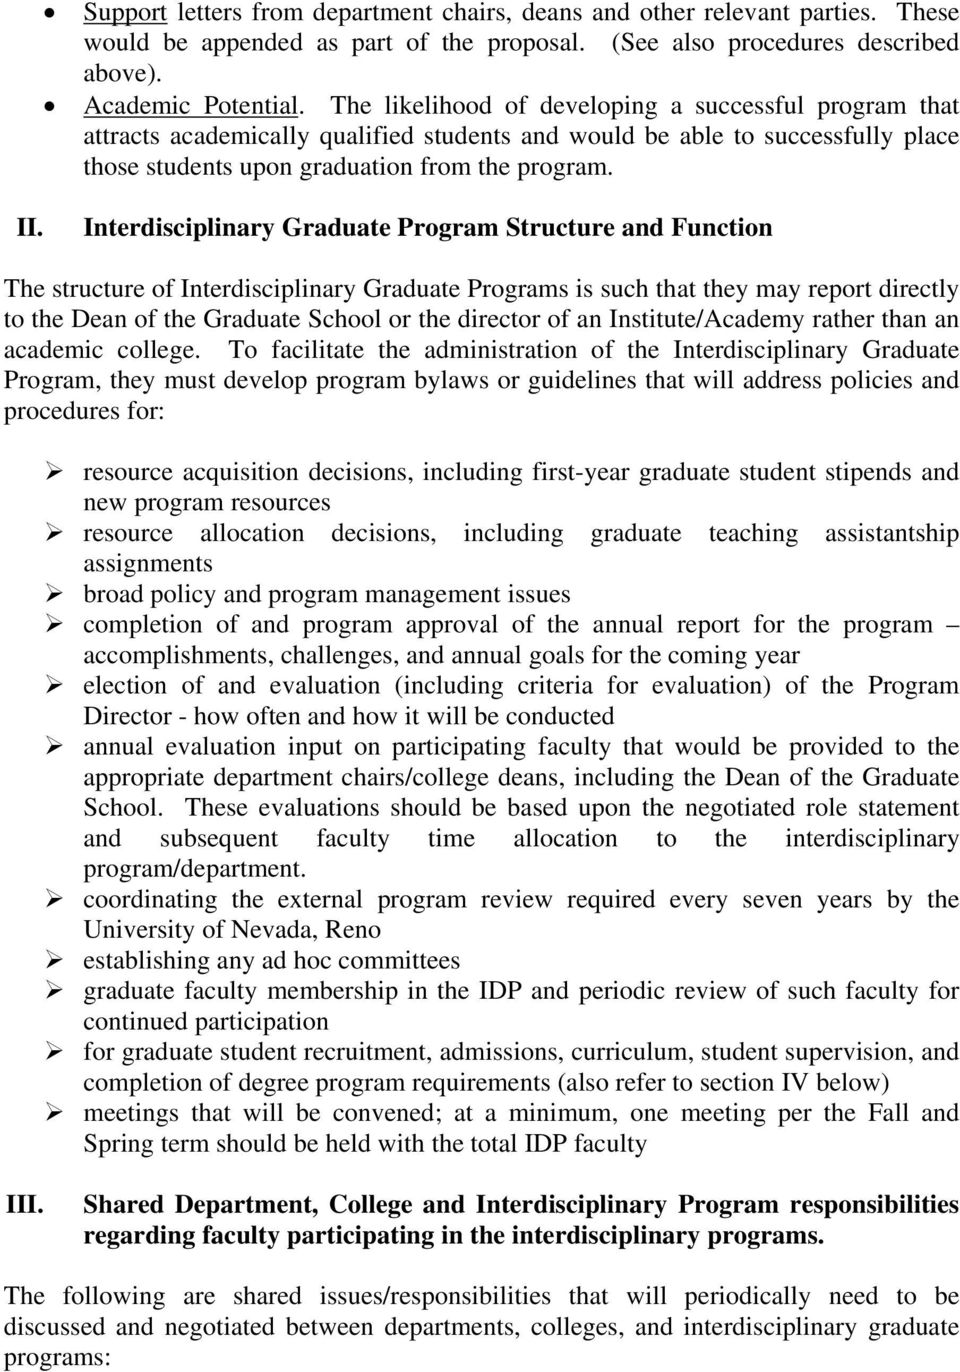 Interdisciplinary Graduate Program Structure and Function The structure of Interdisciplinary Graduate Programs is such that they may report directly to the Dean of the Graduate School or the director